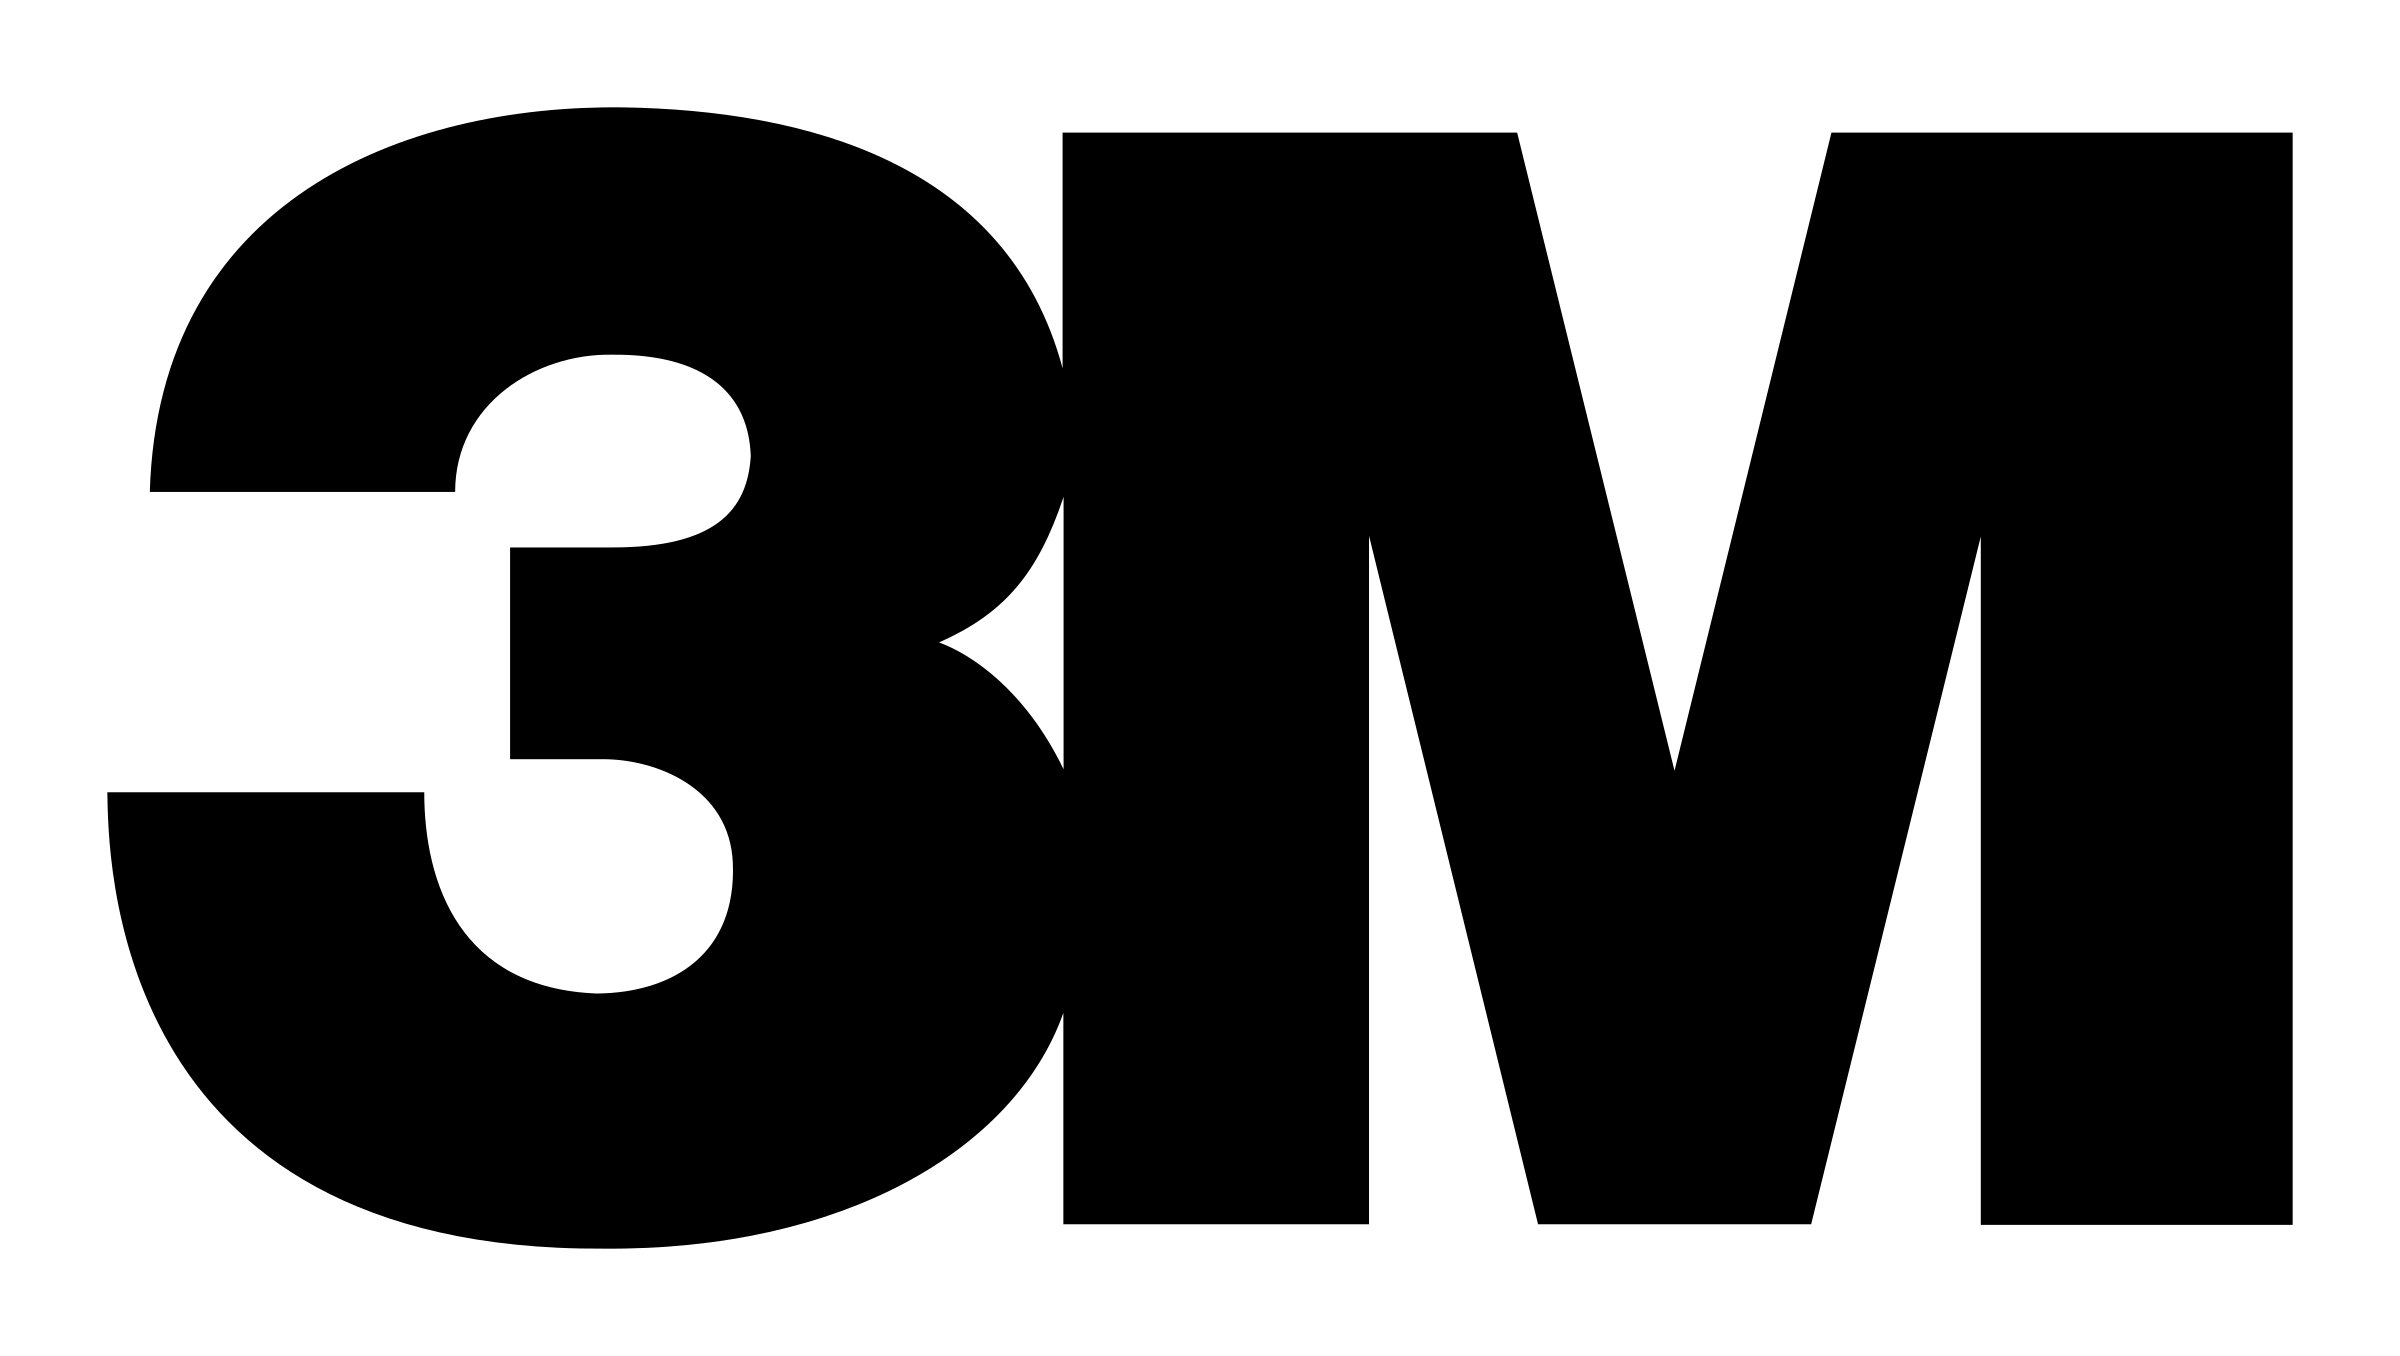 3m-logo-black-and-white.png